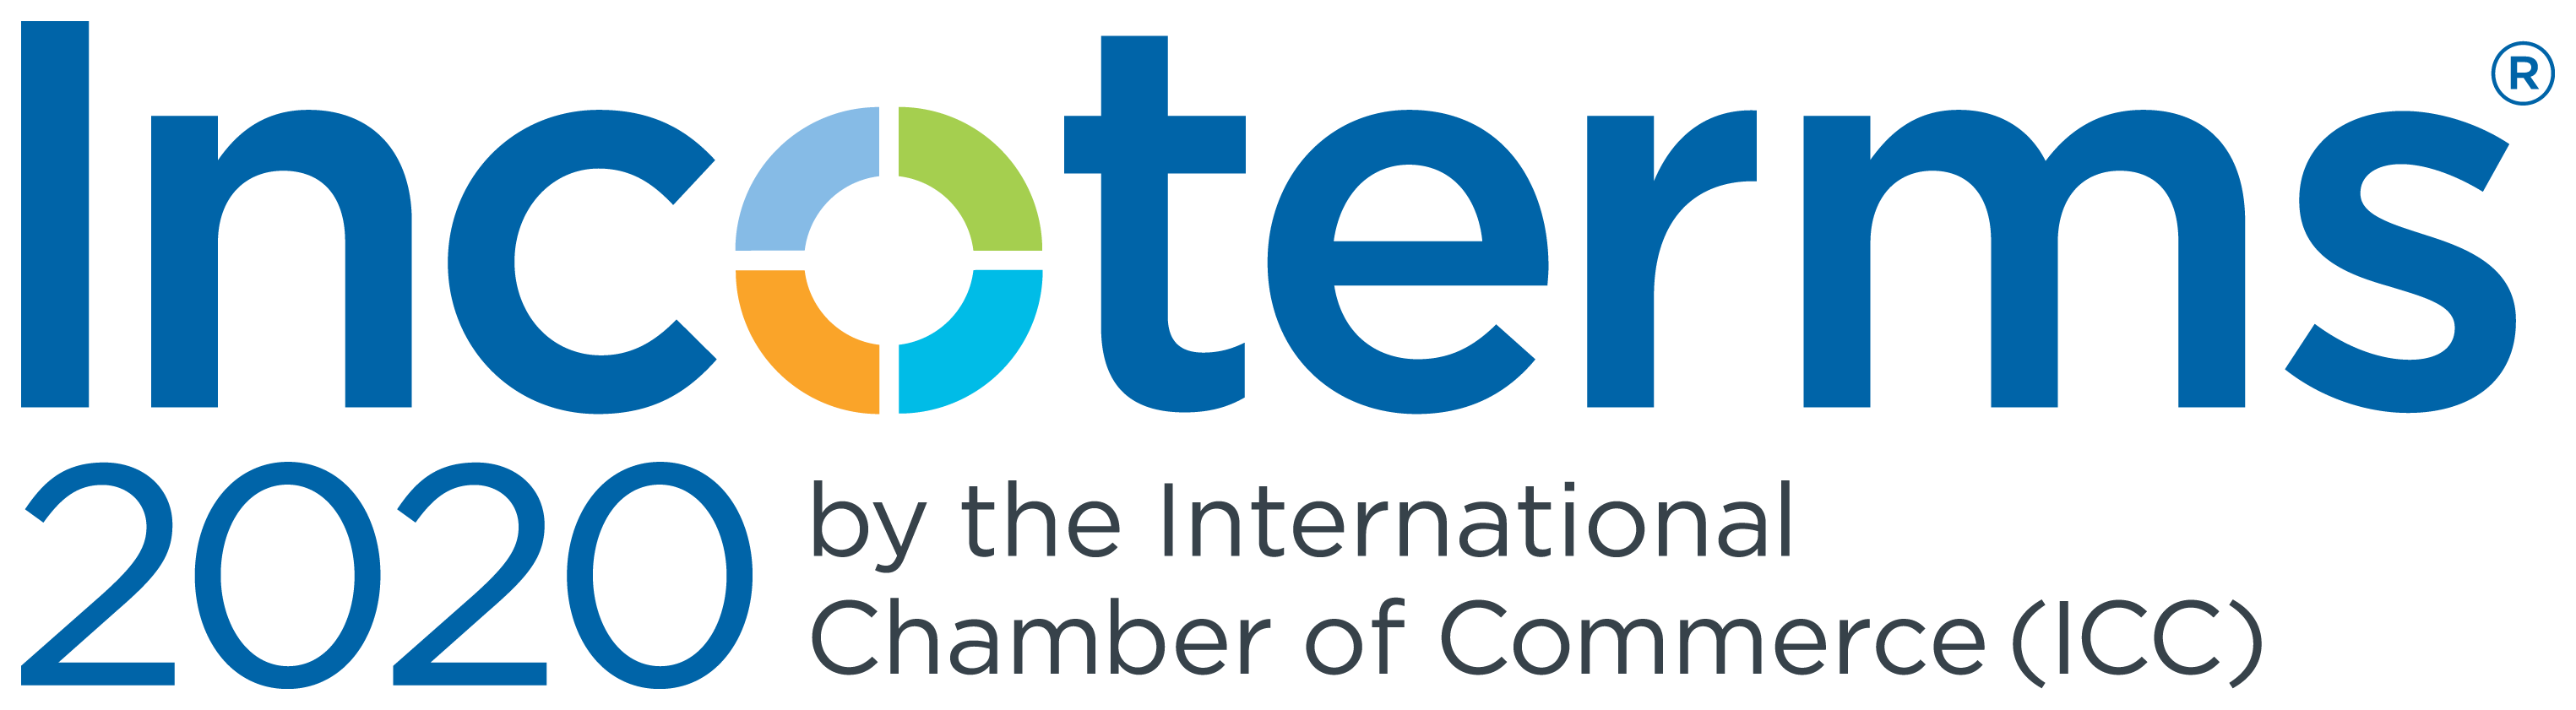 ICC Incoterms 2020 Logo Color RGB